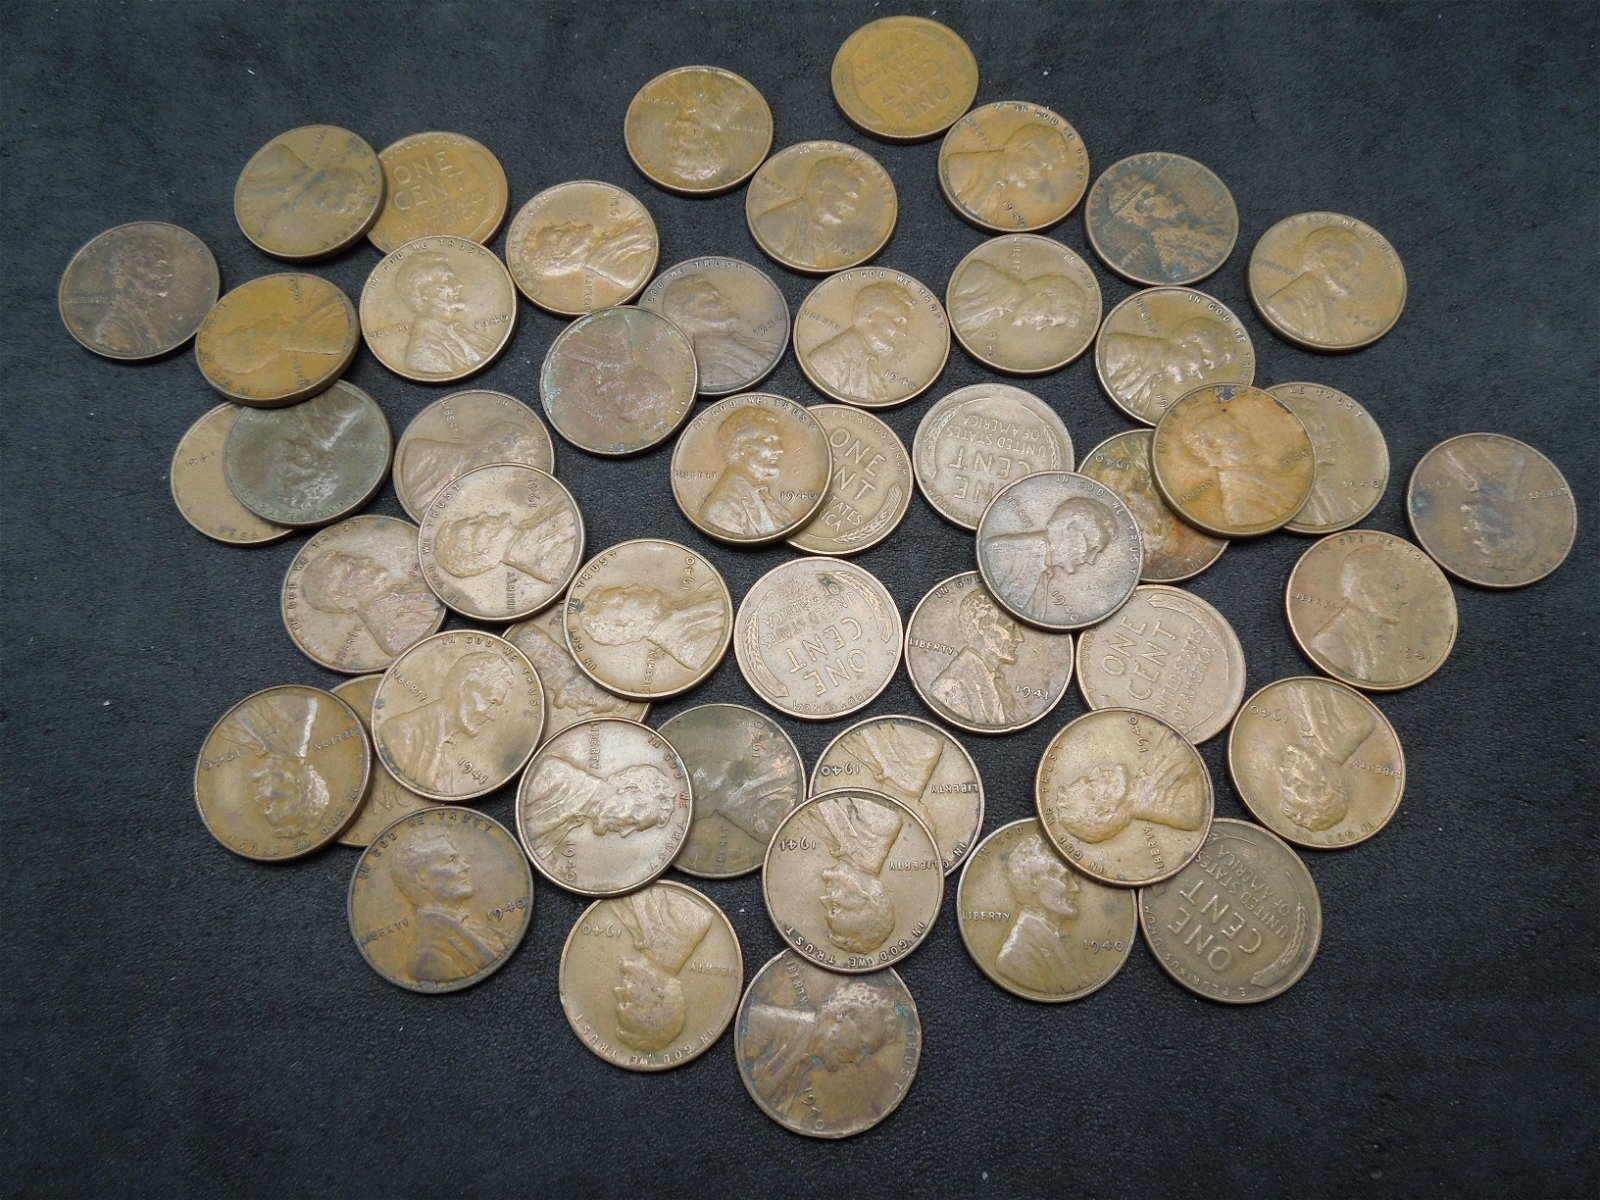 Lot of 50 1940 Lincoln Head Wheat Cents.